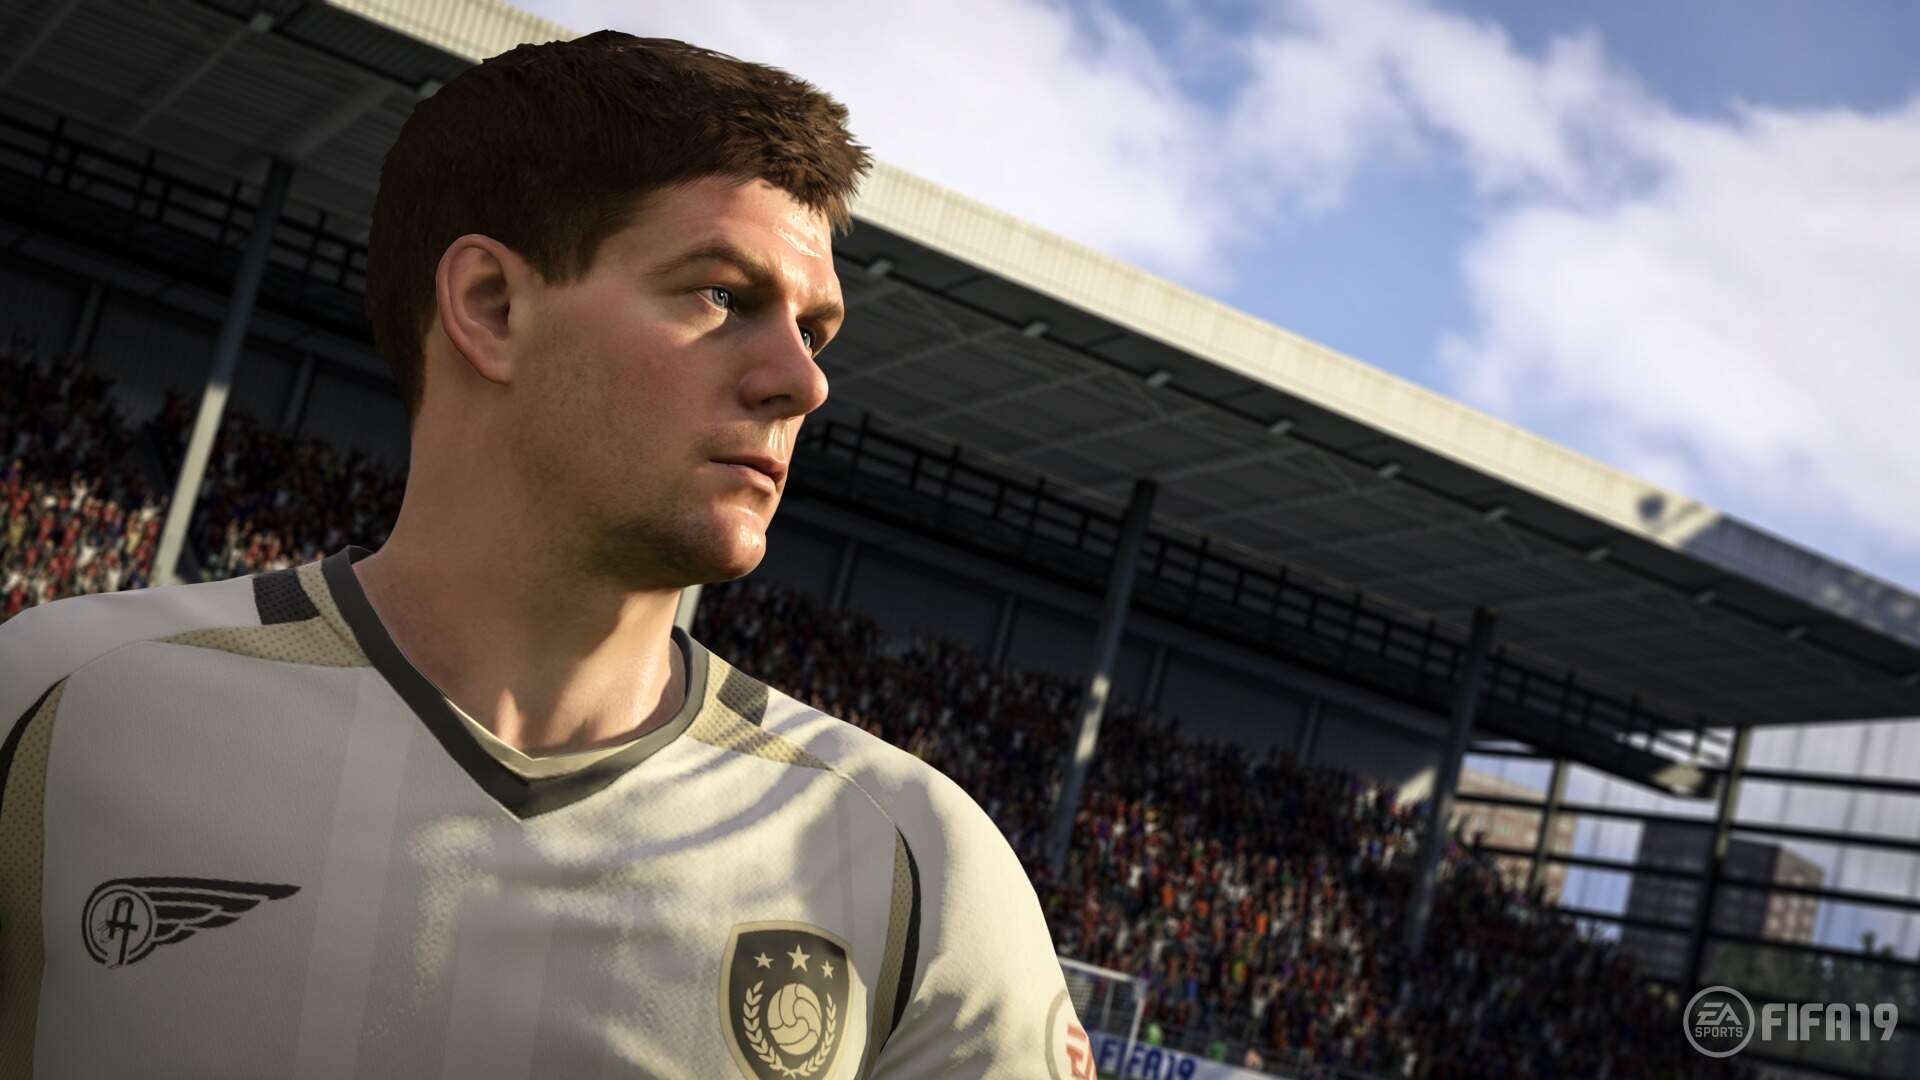 EA Login Issues Spread Beyond Anthem to FIFA, Battlefield 5, and Battlefront 2